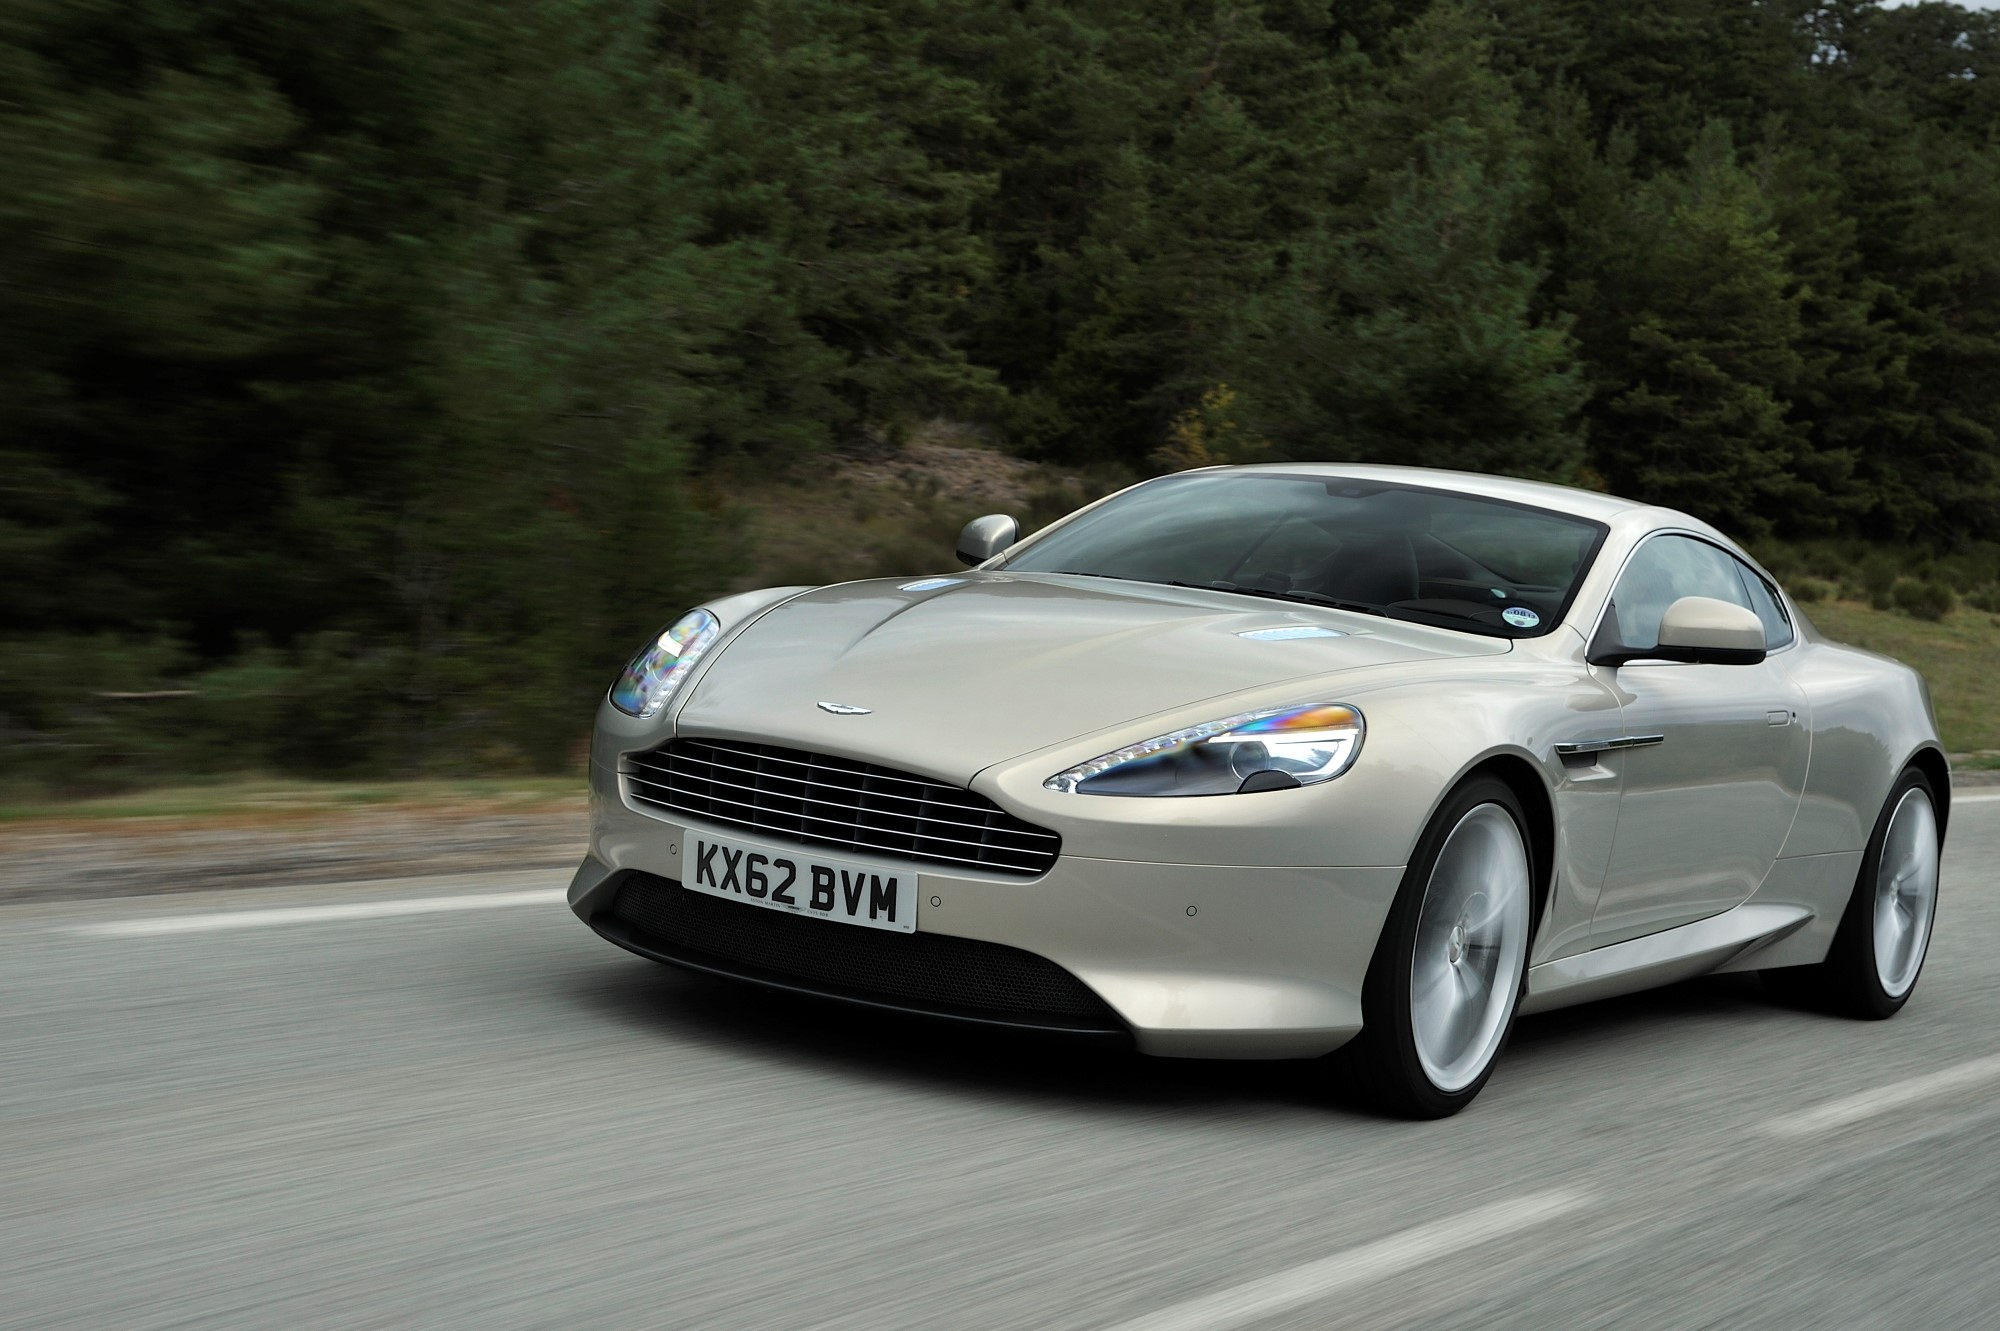 Lexus Of Kansas City >> 2014 Aston Martin DB9 Review, Ratings, Specs, Prices, and Photos - The Car Connection